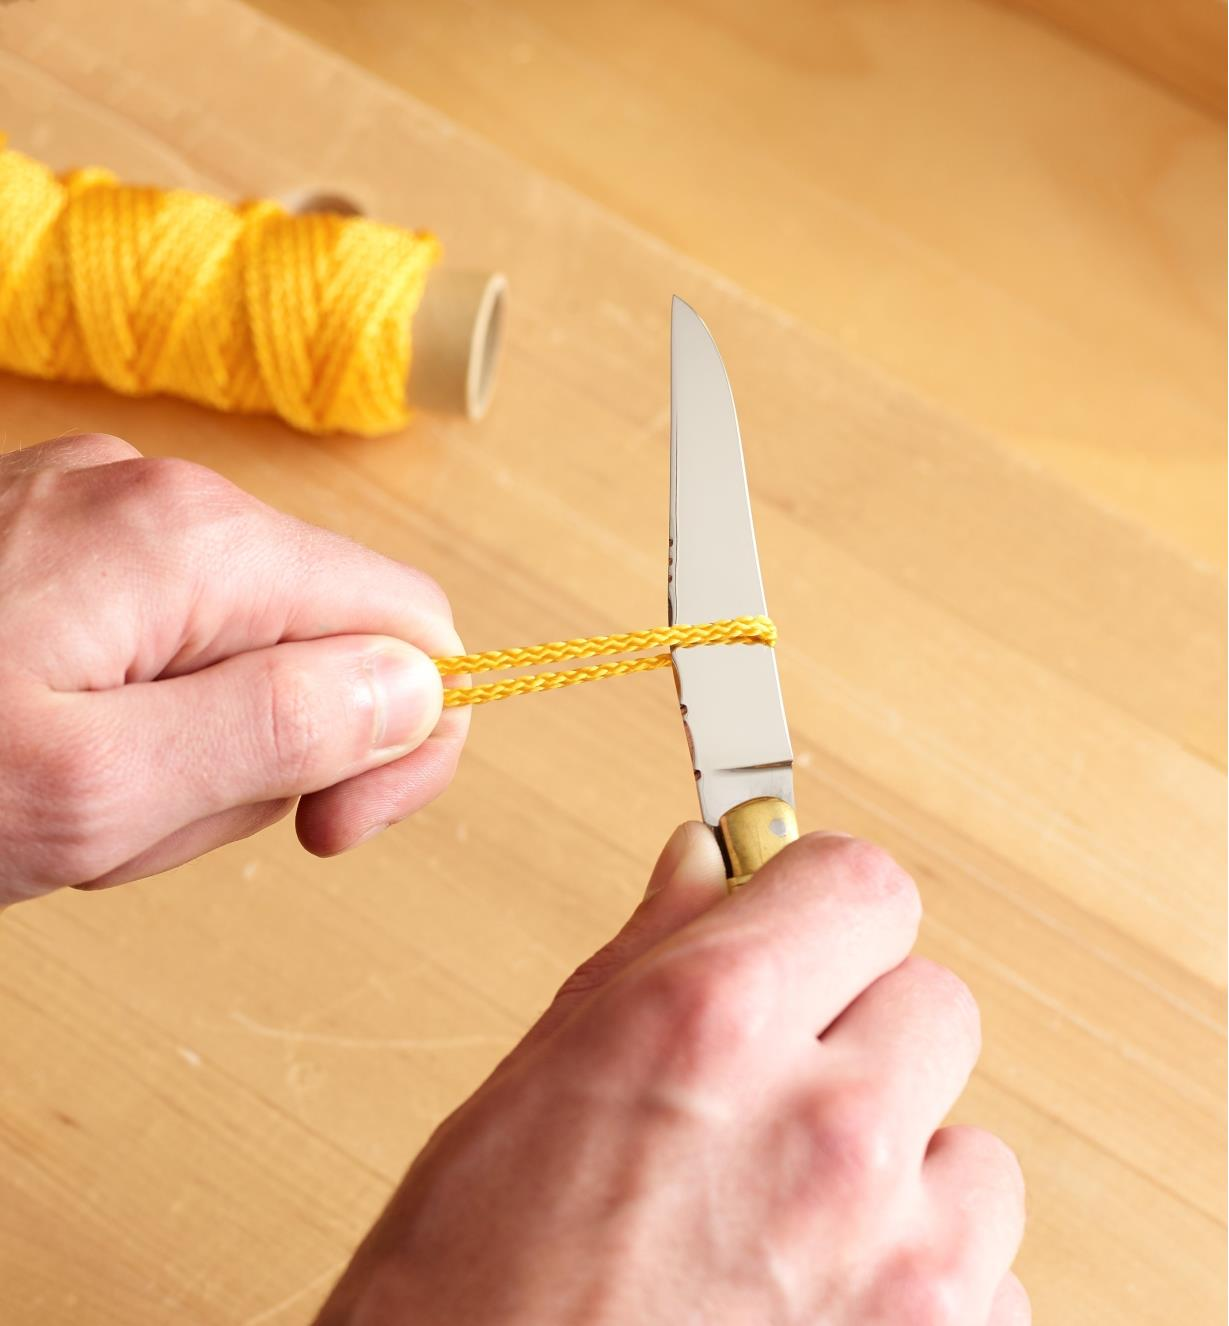 Cutting cord with the Laguiole knife